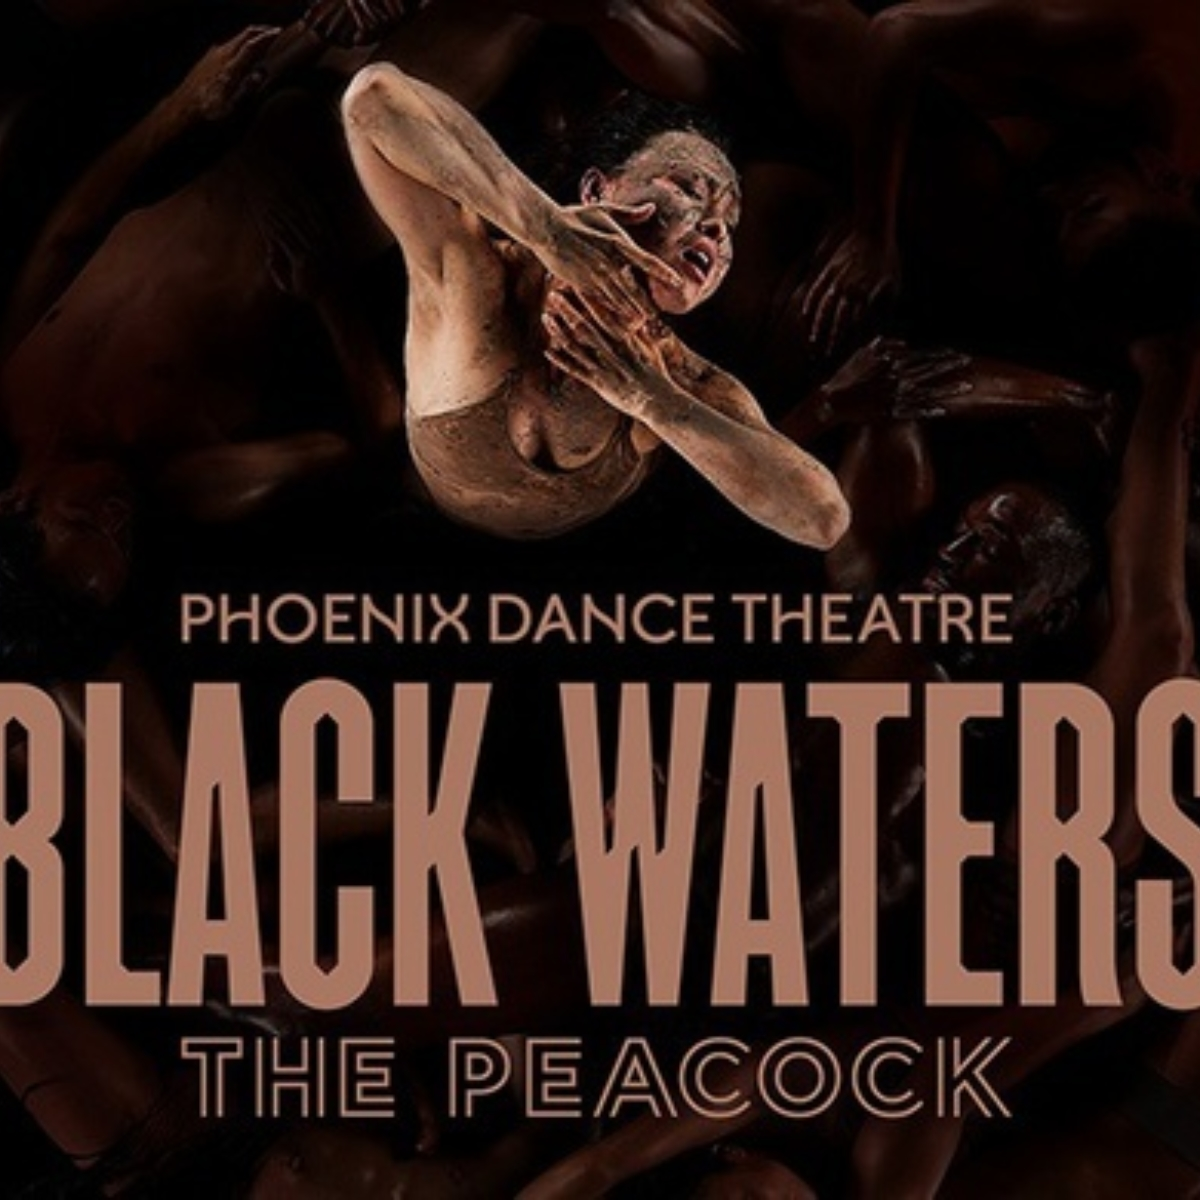 Phoenix Dance Theatre - Black Waters Images